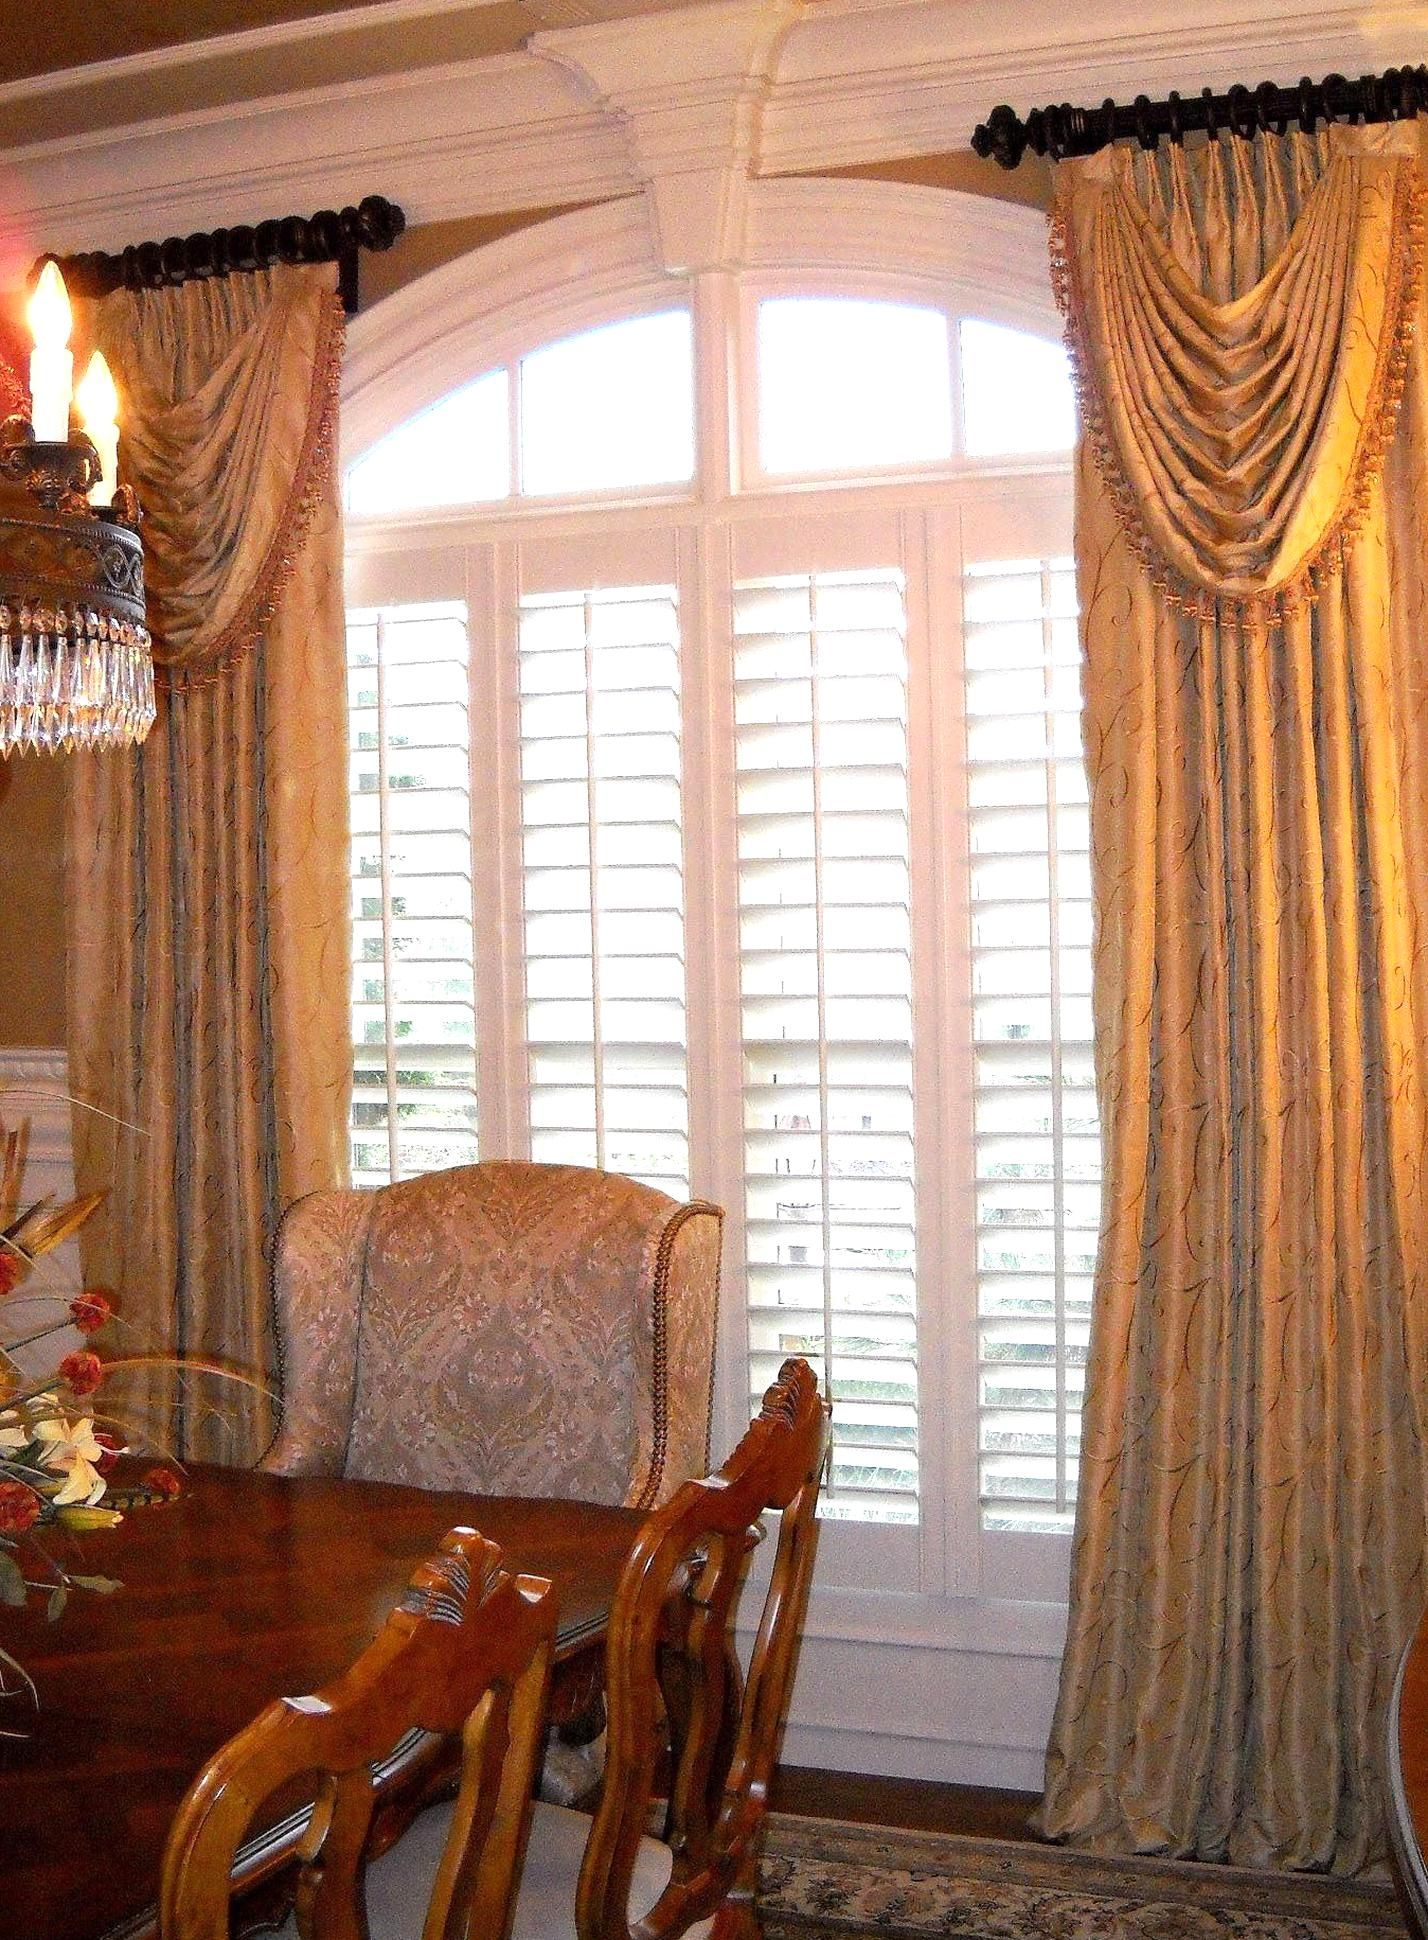 Formal Dining Room Window Treatments Best Of Windowtreatments Ring Curtains With Swags I Dining Room Curtains Dining Room Window Treatments Elegant Dining Room